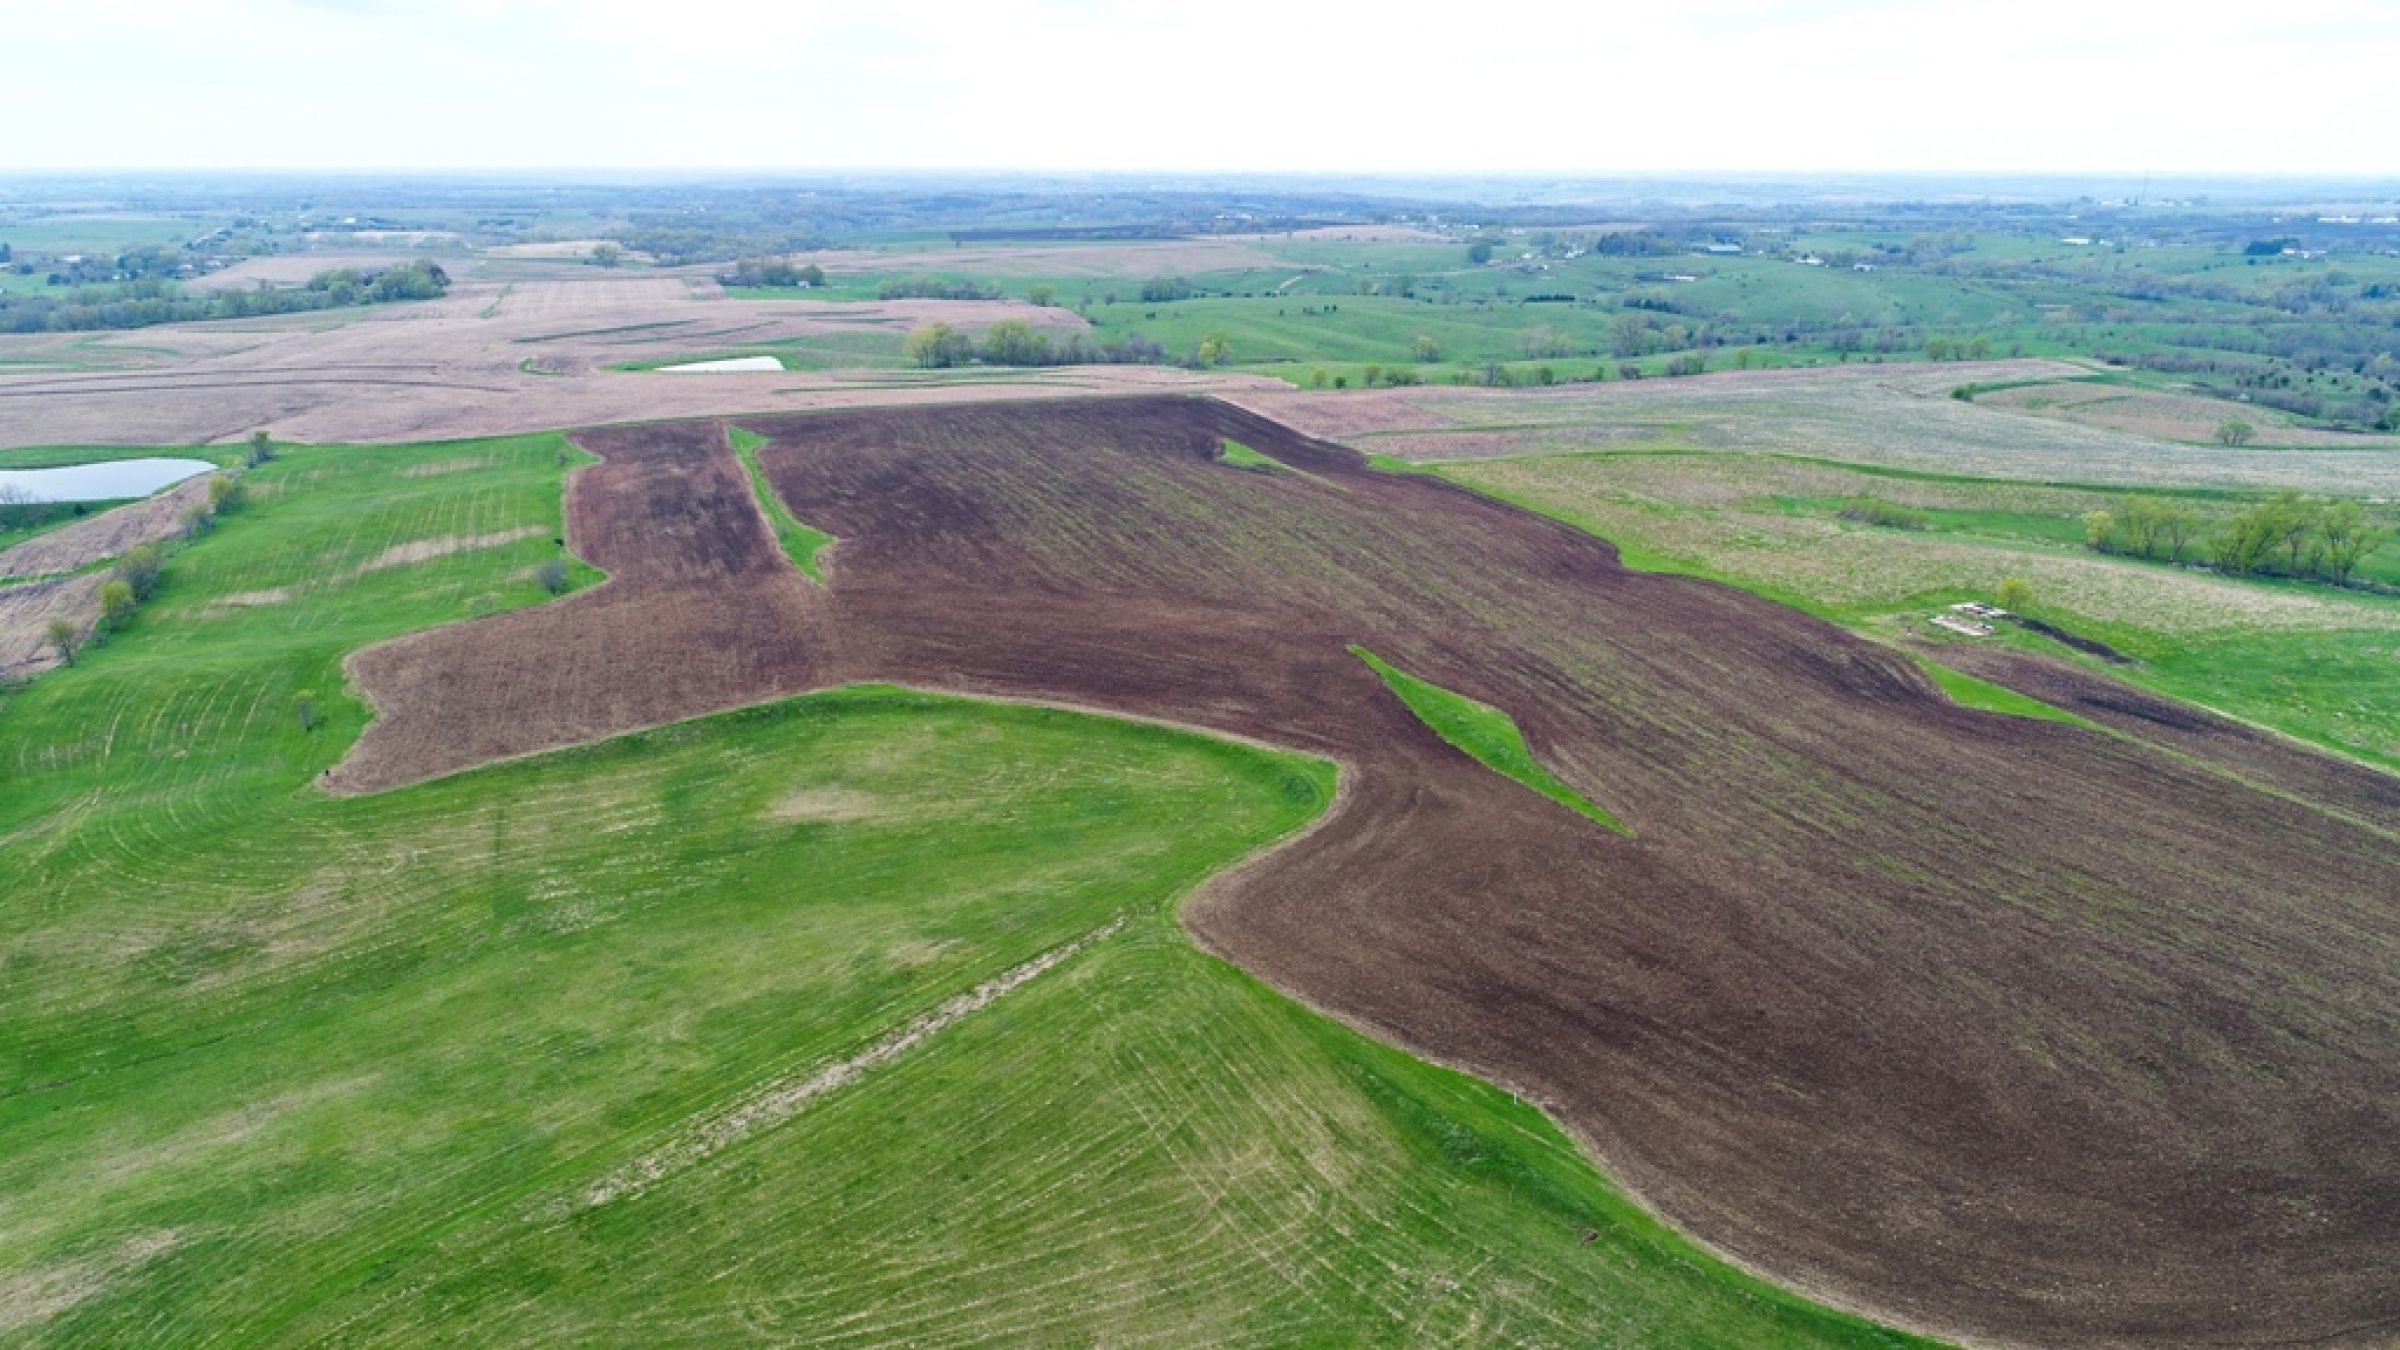 Peoples Company Land for Sale in Warren County, Iowa - 132 acres - 130th Ave. Lucas, IA 50151 - 14502